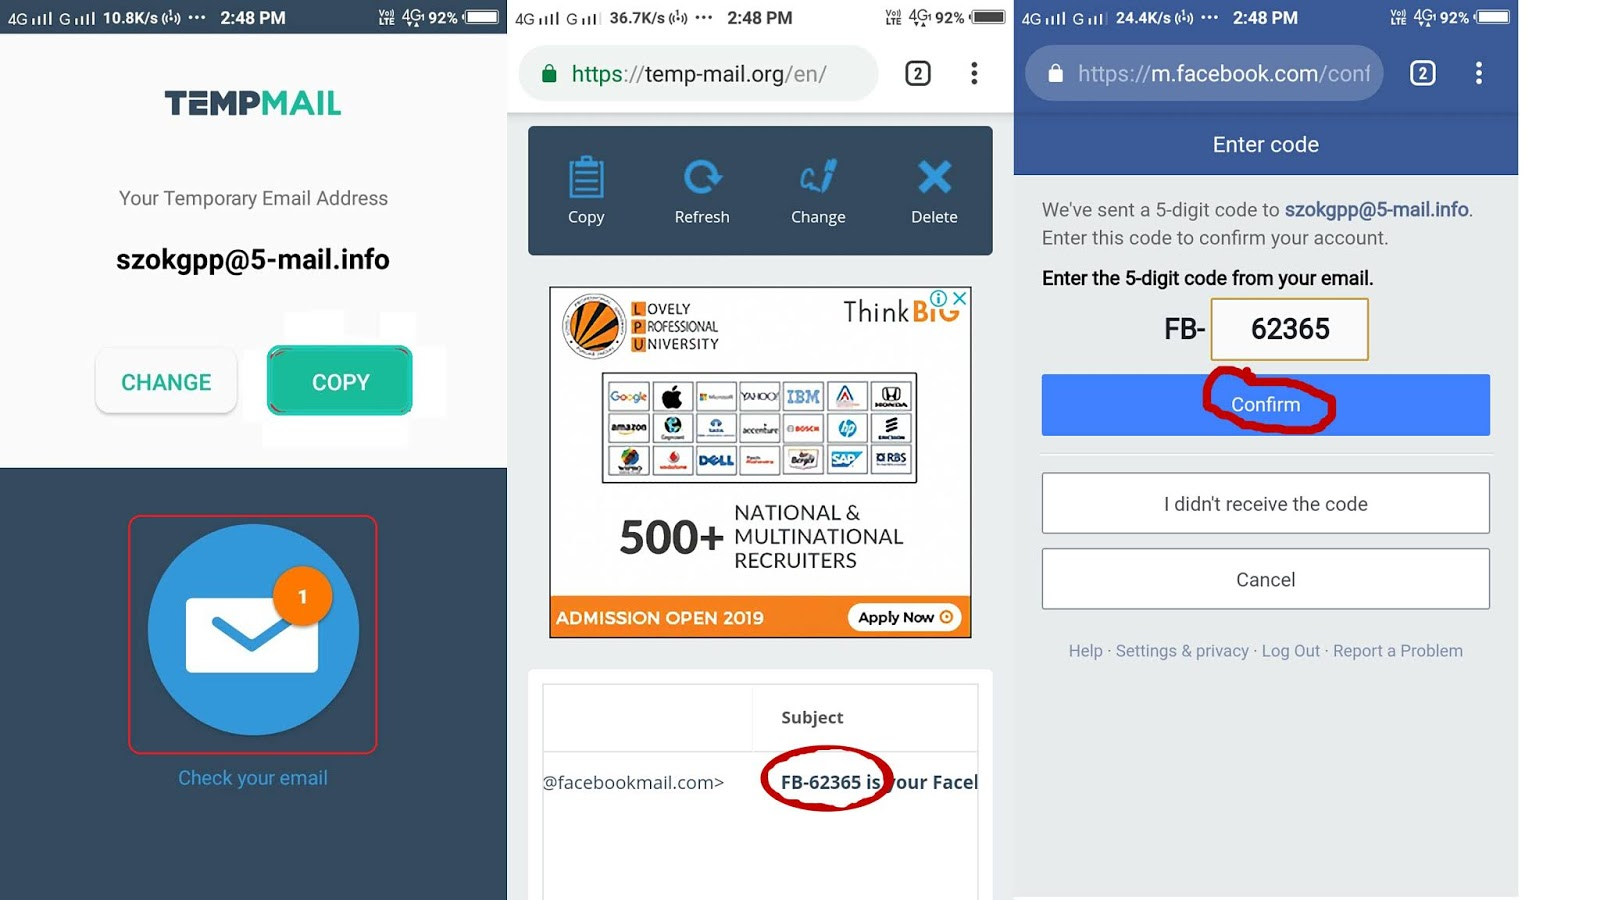 How To Create Fake Facebook Account 2019 - Stay Updated